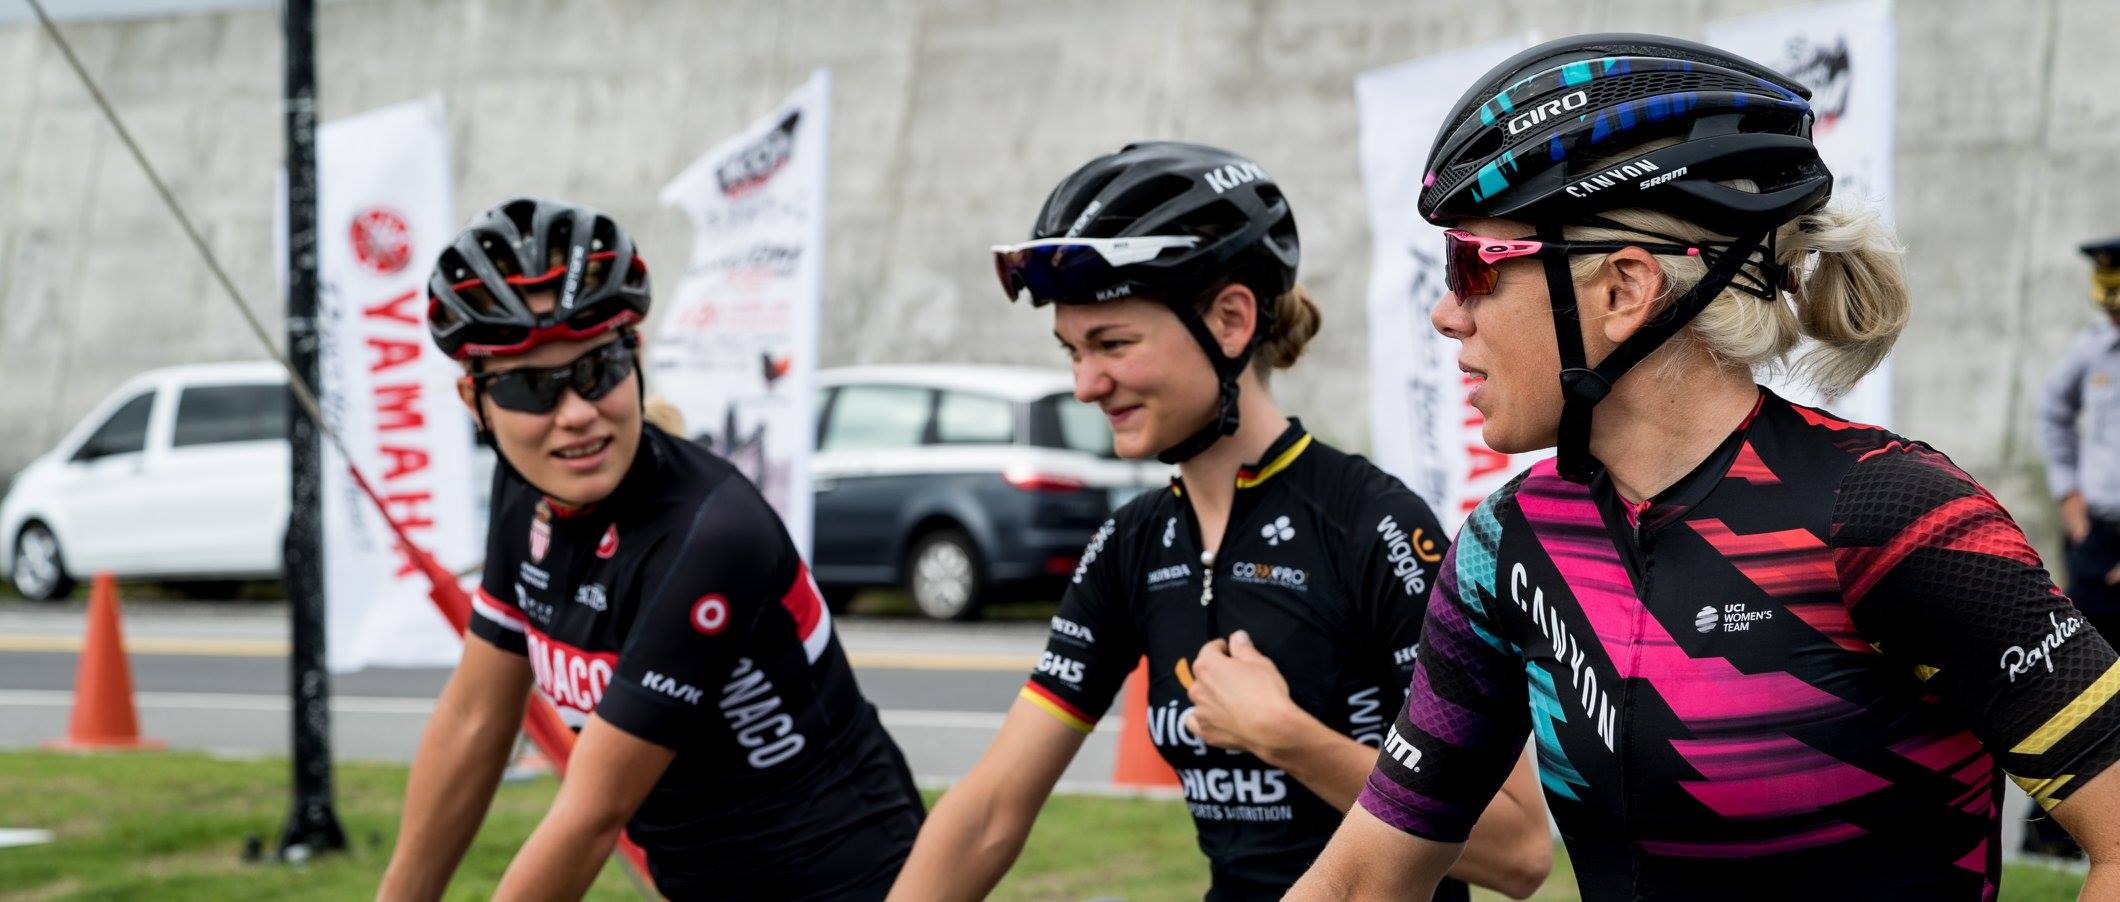 taiwan kom challenge Deligny 2